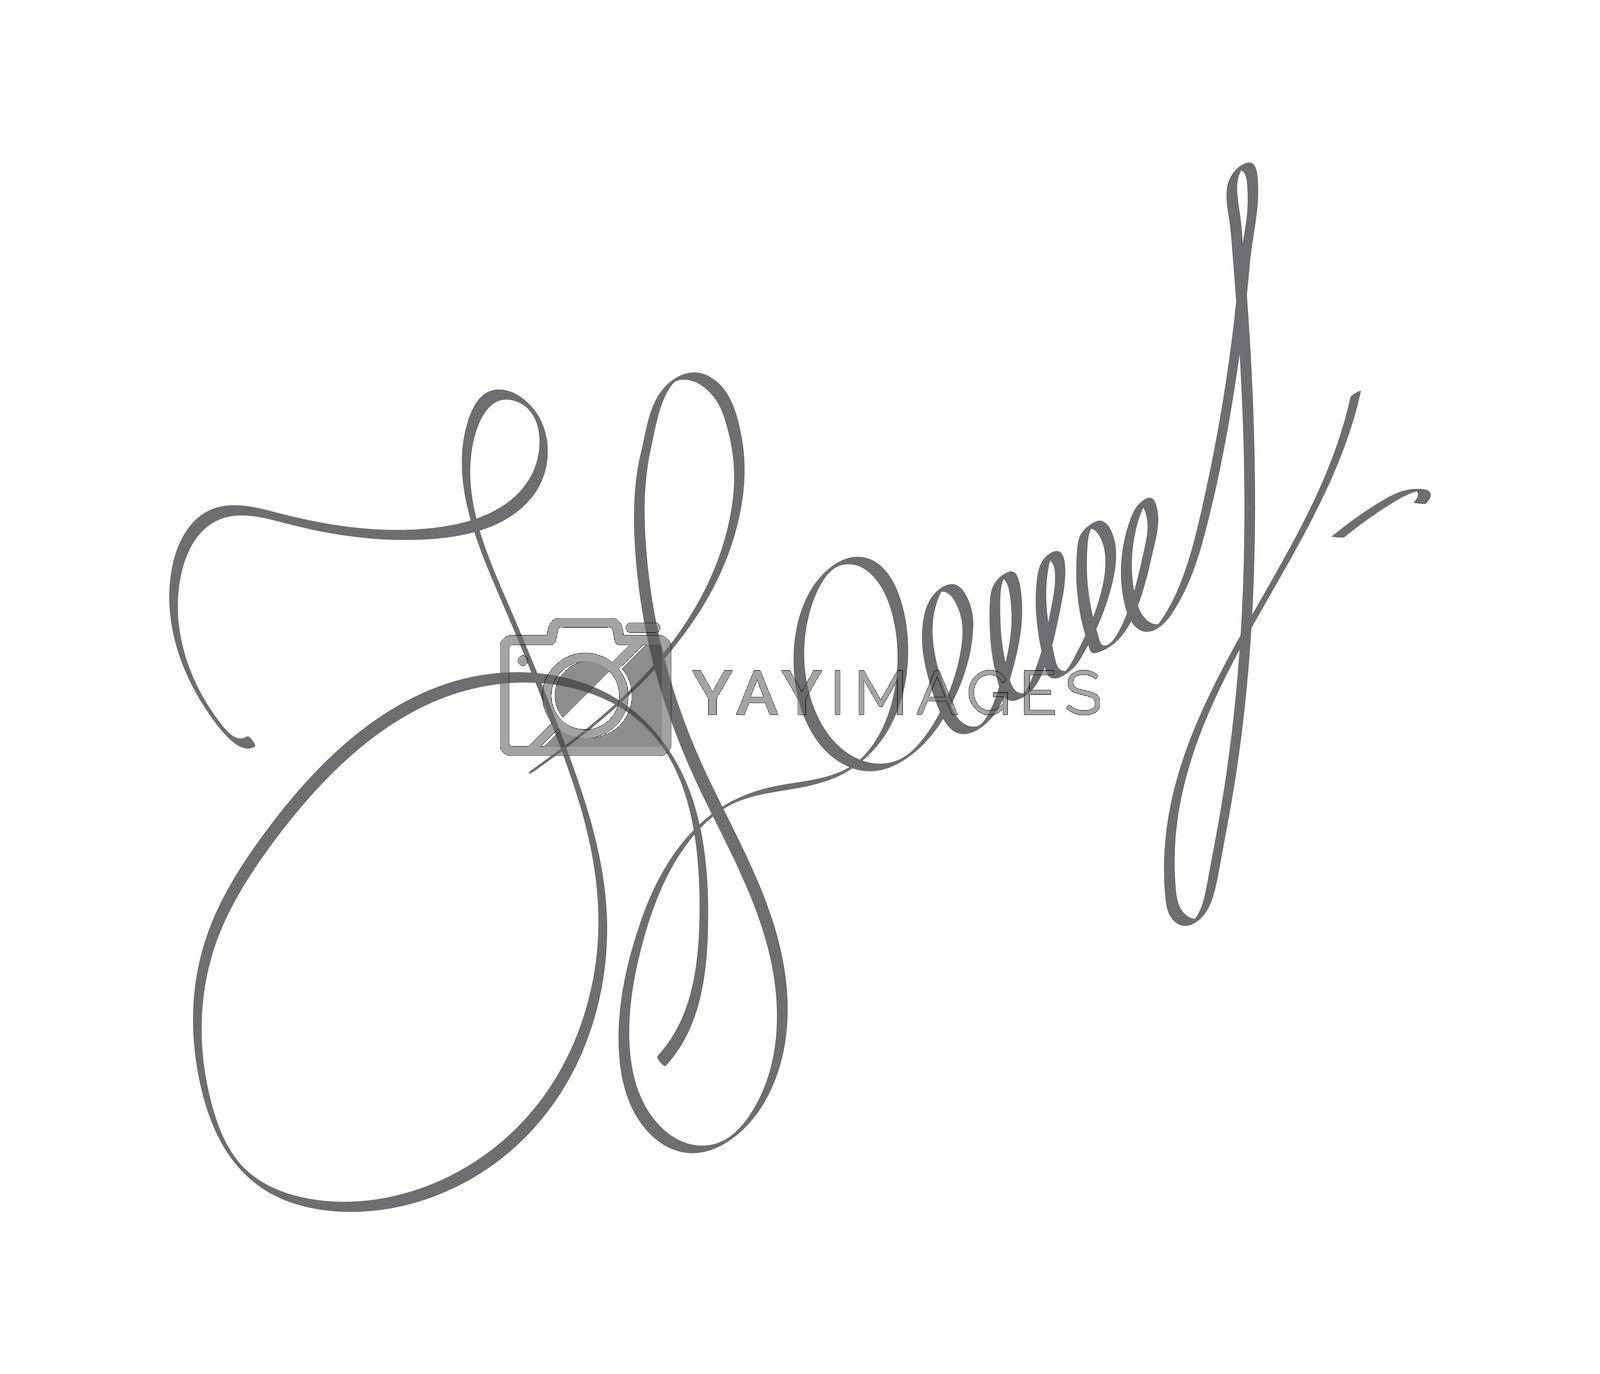 Abstract hand-drawn calligraphic autograph. Custom manual signature for documents. Flat Style